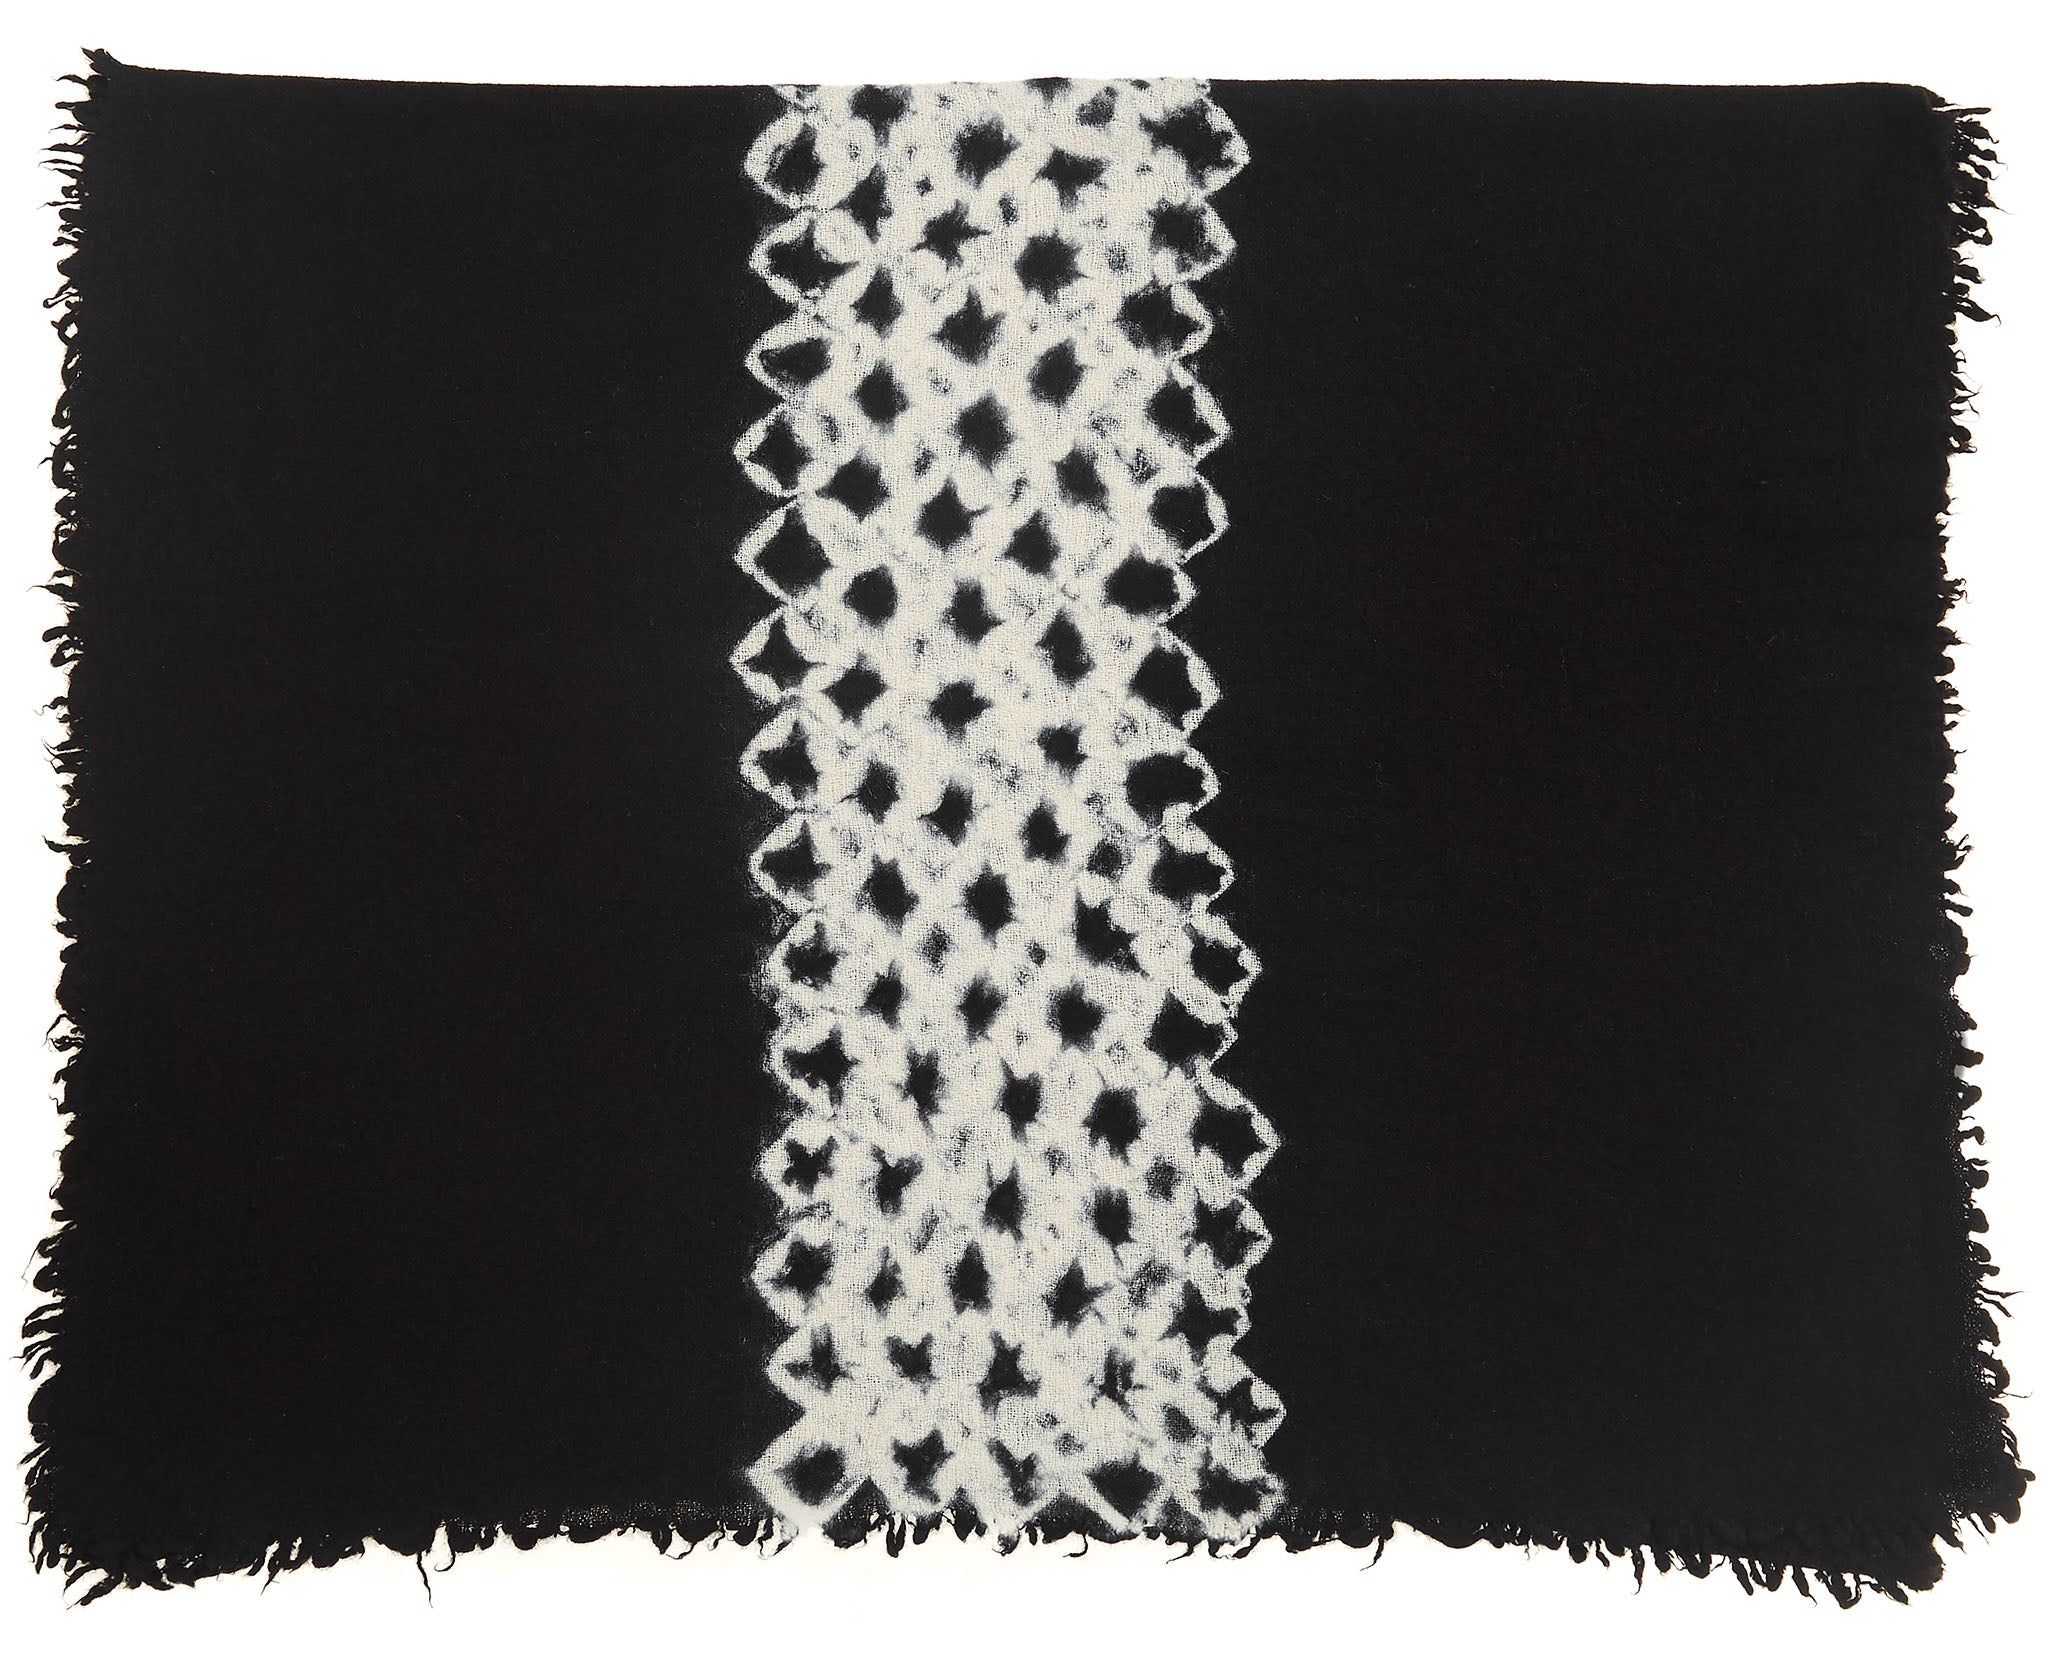 Felted Shawl Black/White Shibori